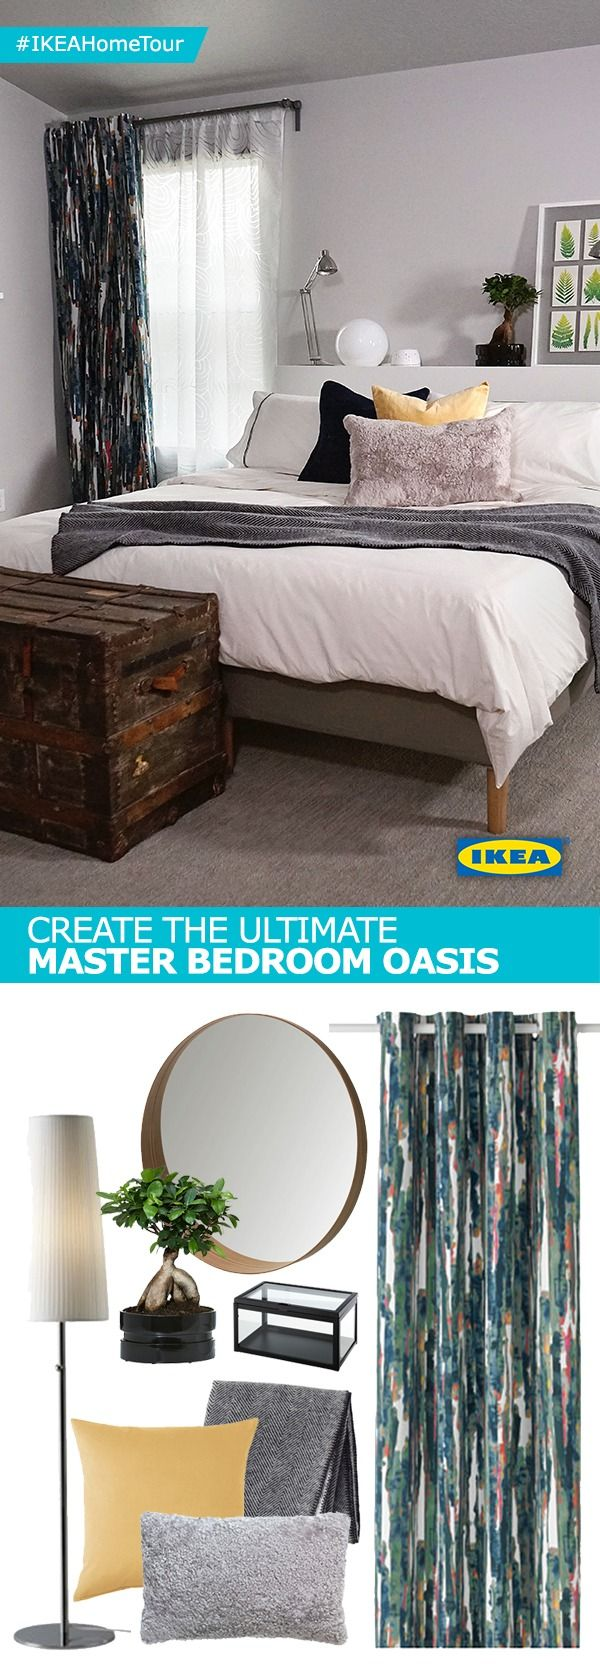 Find Inspiration For Your Own Master Bedroom Oasis From The IKEA Home Tour Squads Latest Makeover